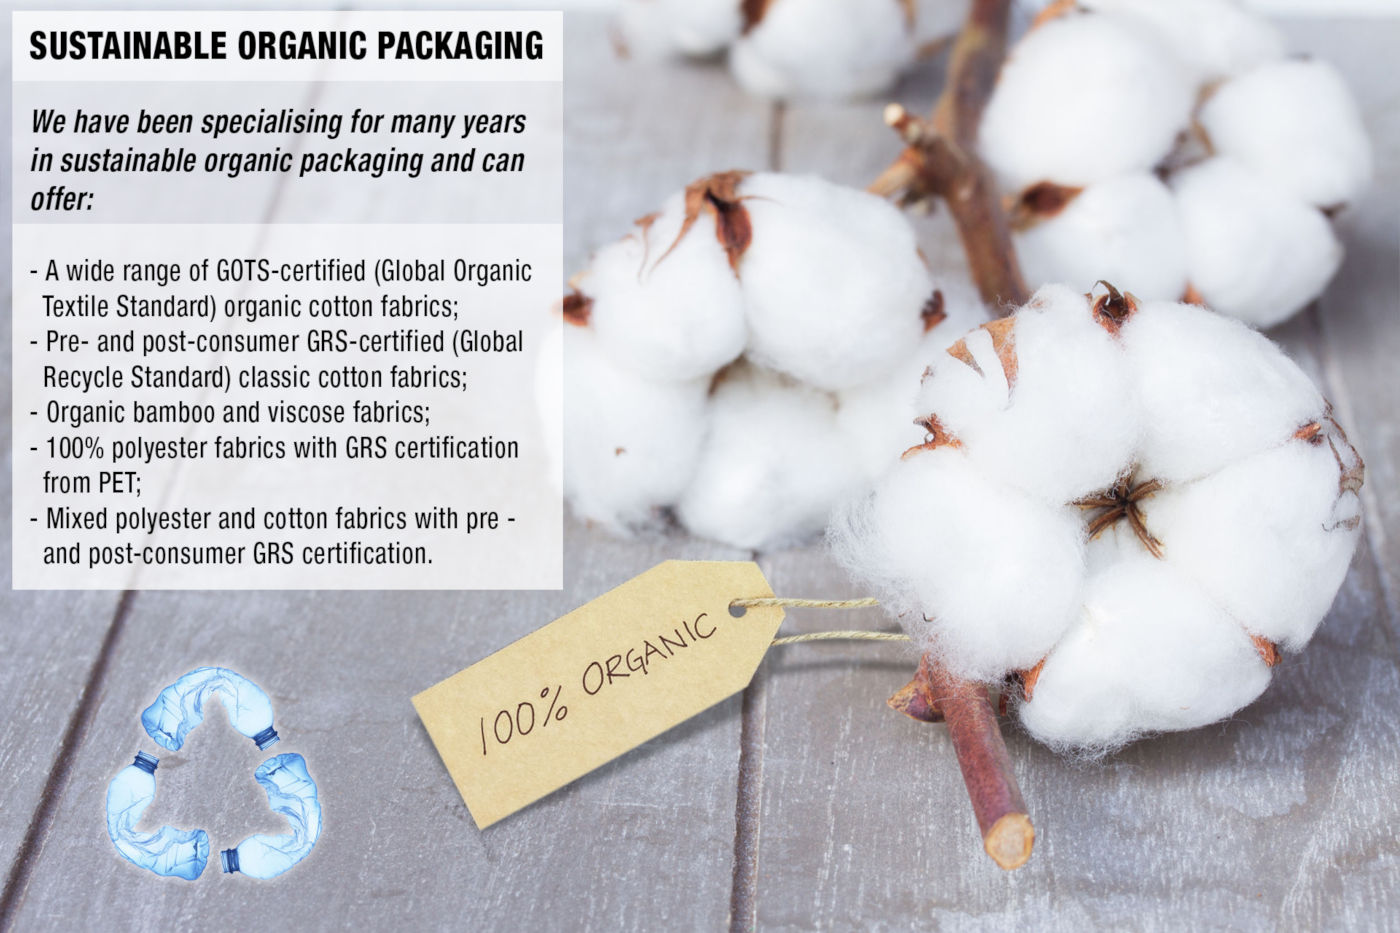 SUSTAINABLE ORGANIC PACKAGING. We have been specialising for many years in sustainable organic packaging and can offer:- a wide range of GOTS-certified (Global Organic Textile Standard) organic cotton fabrics; pre- and post-consumer GRS-certified (Global Recycle Standard) classic cotton fabrics; organic bamboo and viscose fabrics;